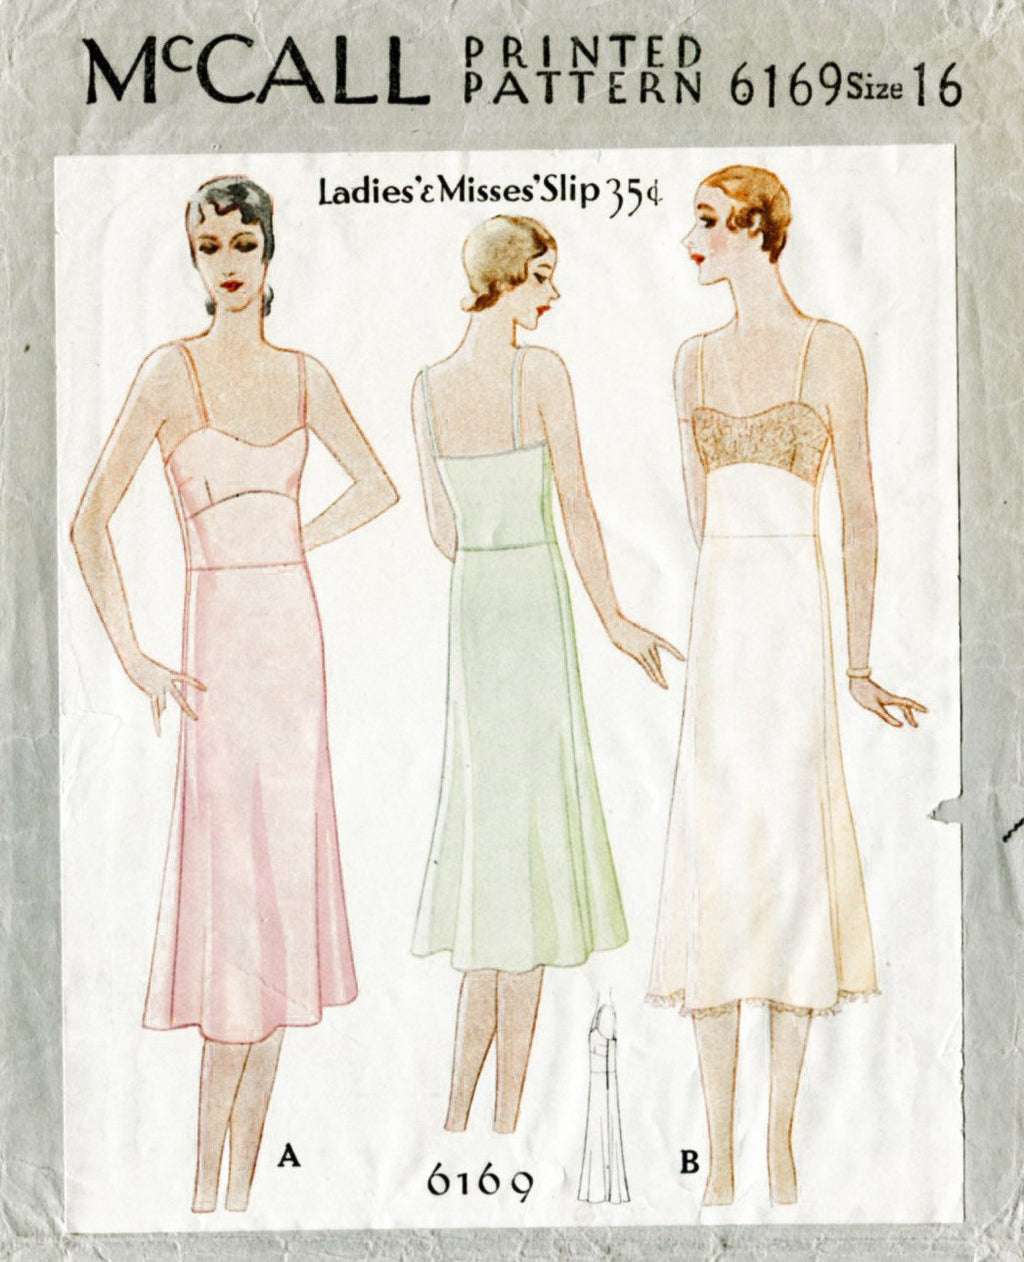 McCall 6169 1920s slip dress vintage lingerie sewing pattern